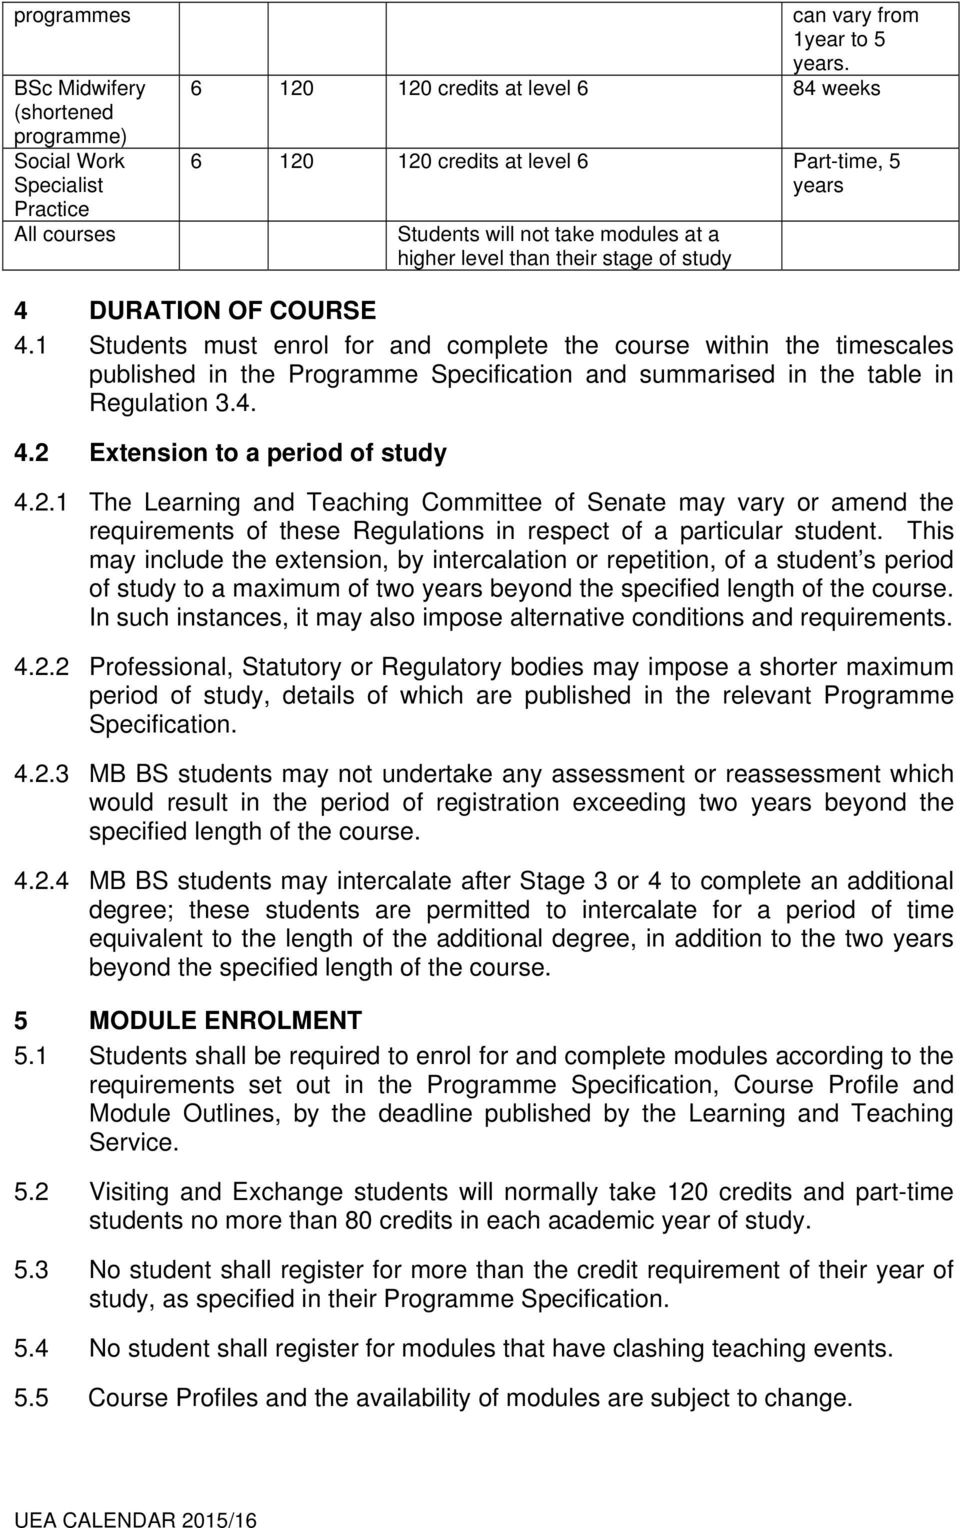 1 Students must enrol for and complete the course within the timescales published in the Programme Specification and summarised in the table in Regulation 3.4. 4.2